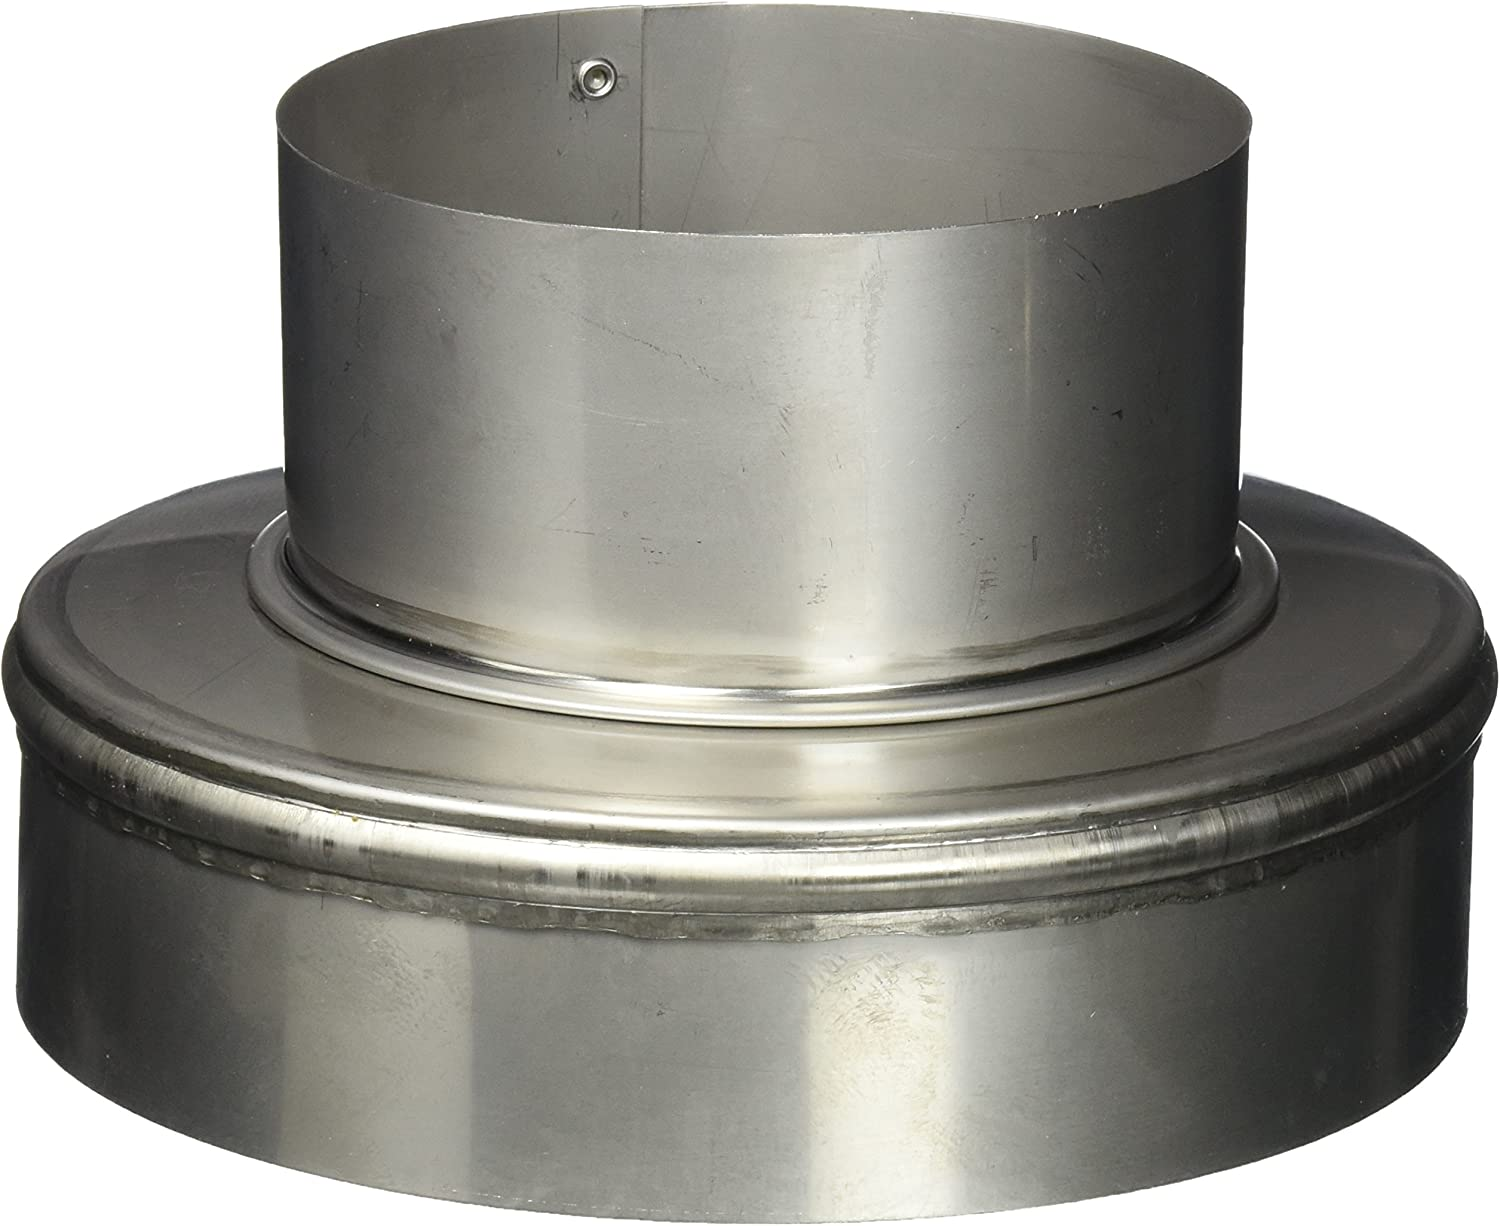 SELKIRK 244246 4VP Recommended Adapter cheap A6 Chimney